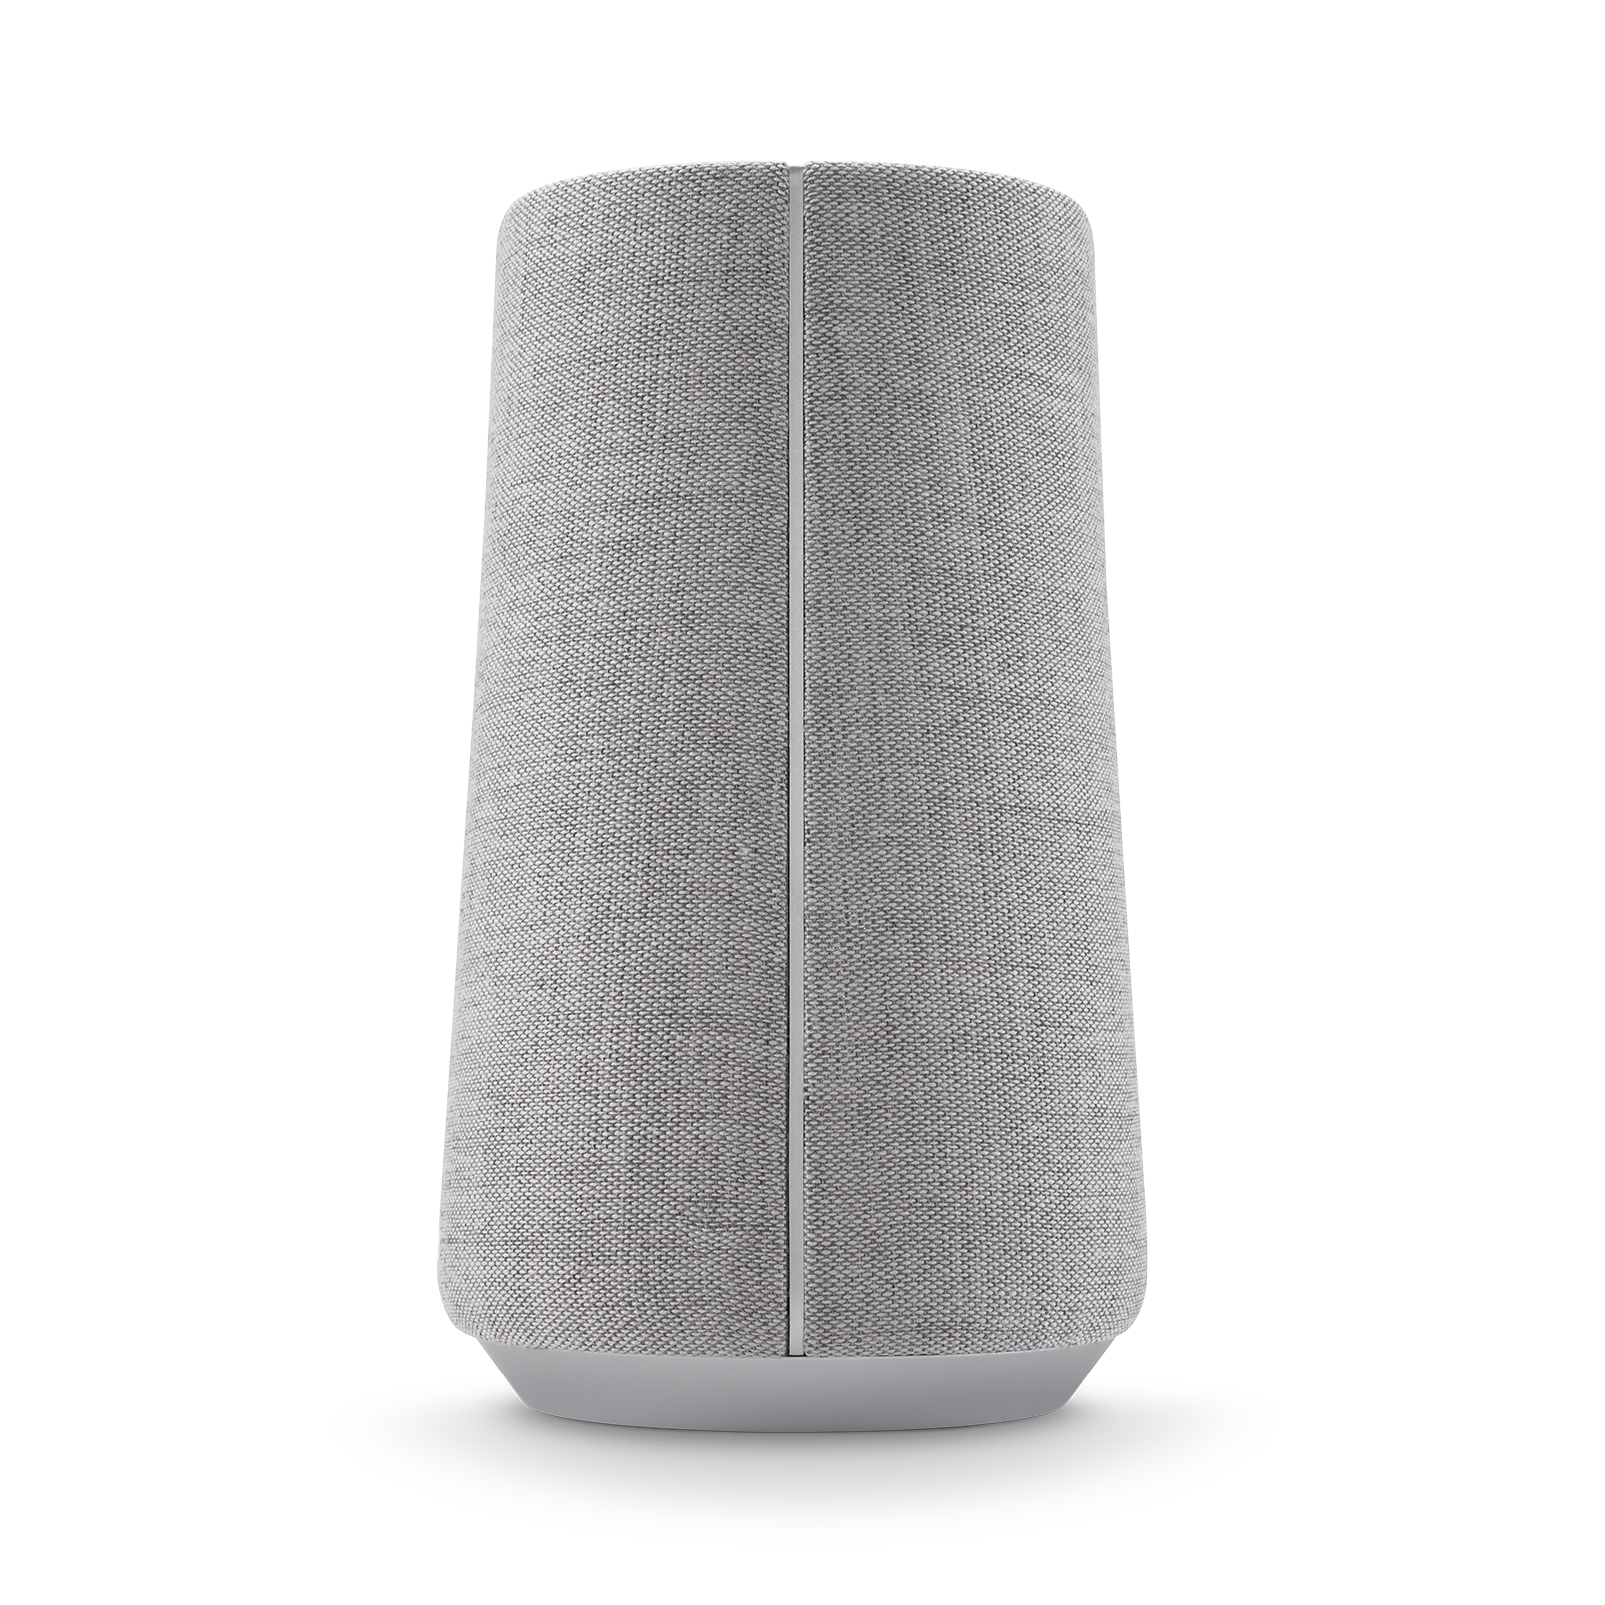 Harman Kardon Citation 100 - Grey - The smallest, smartest home speaker with impactful sound - Detailshot 1